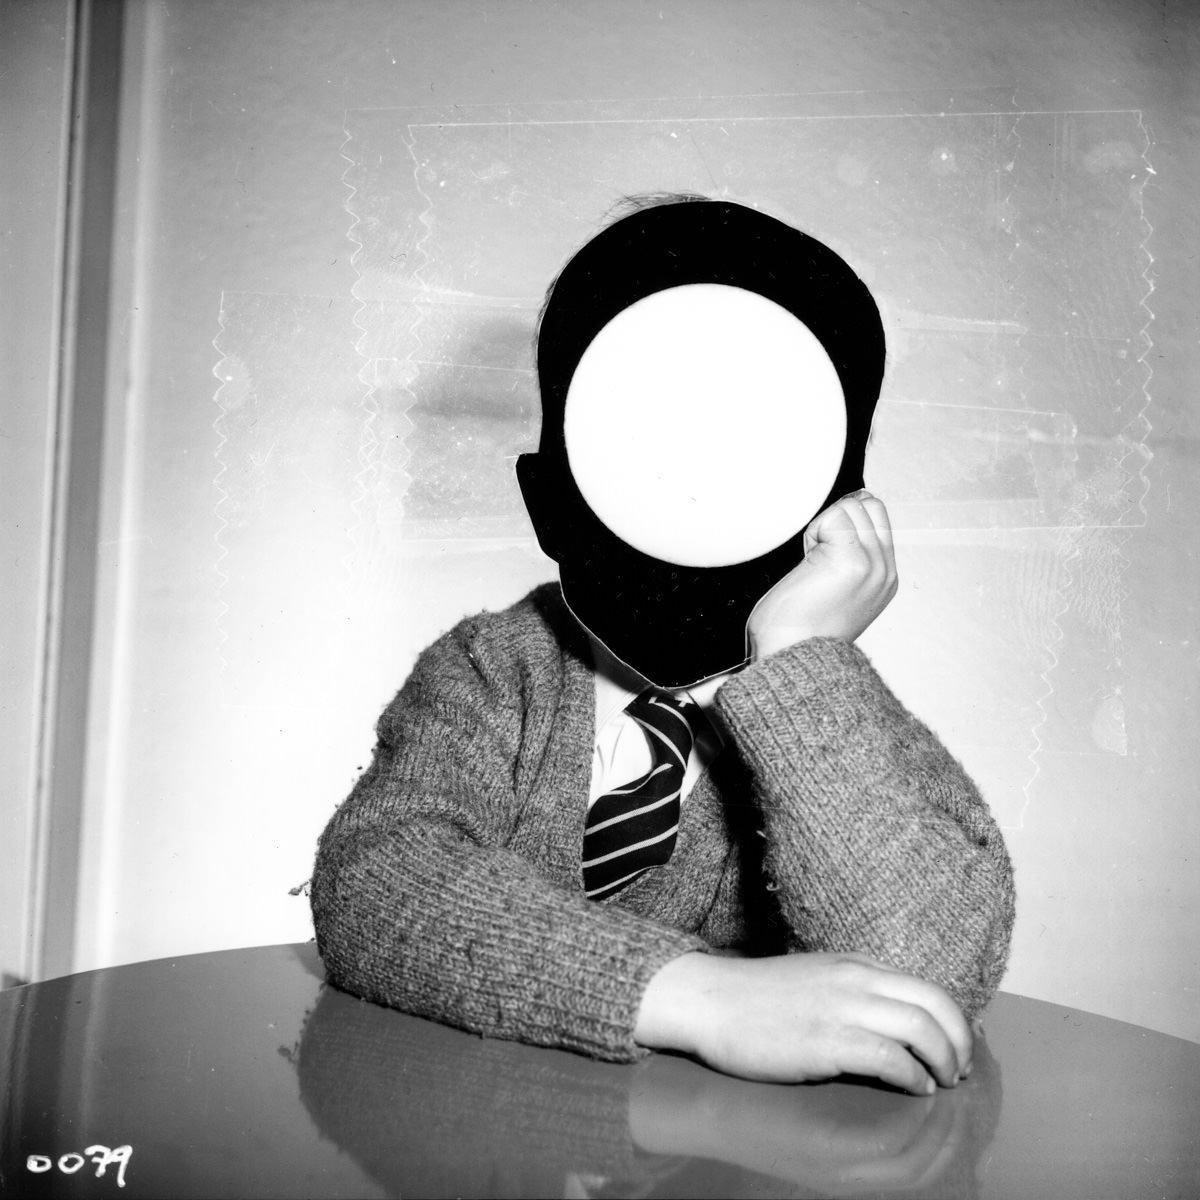 """""""0079"""" from the series The Children of Mars, by William Mokrynski"""